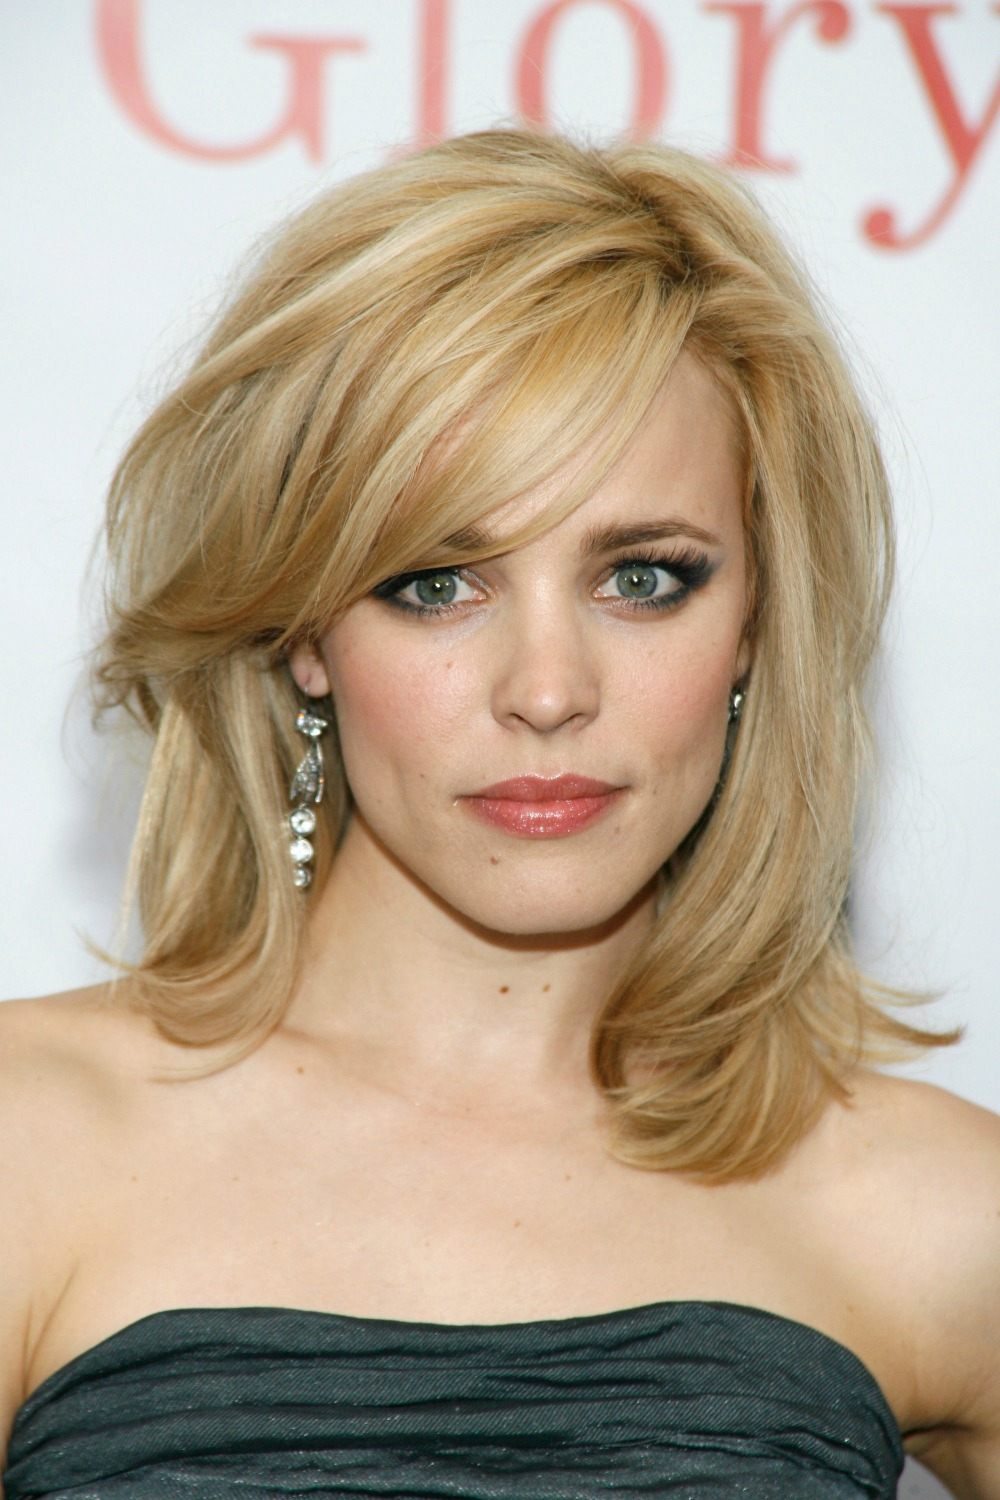 This is one of my favorite looks on Rachel McAdams. It's longer than